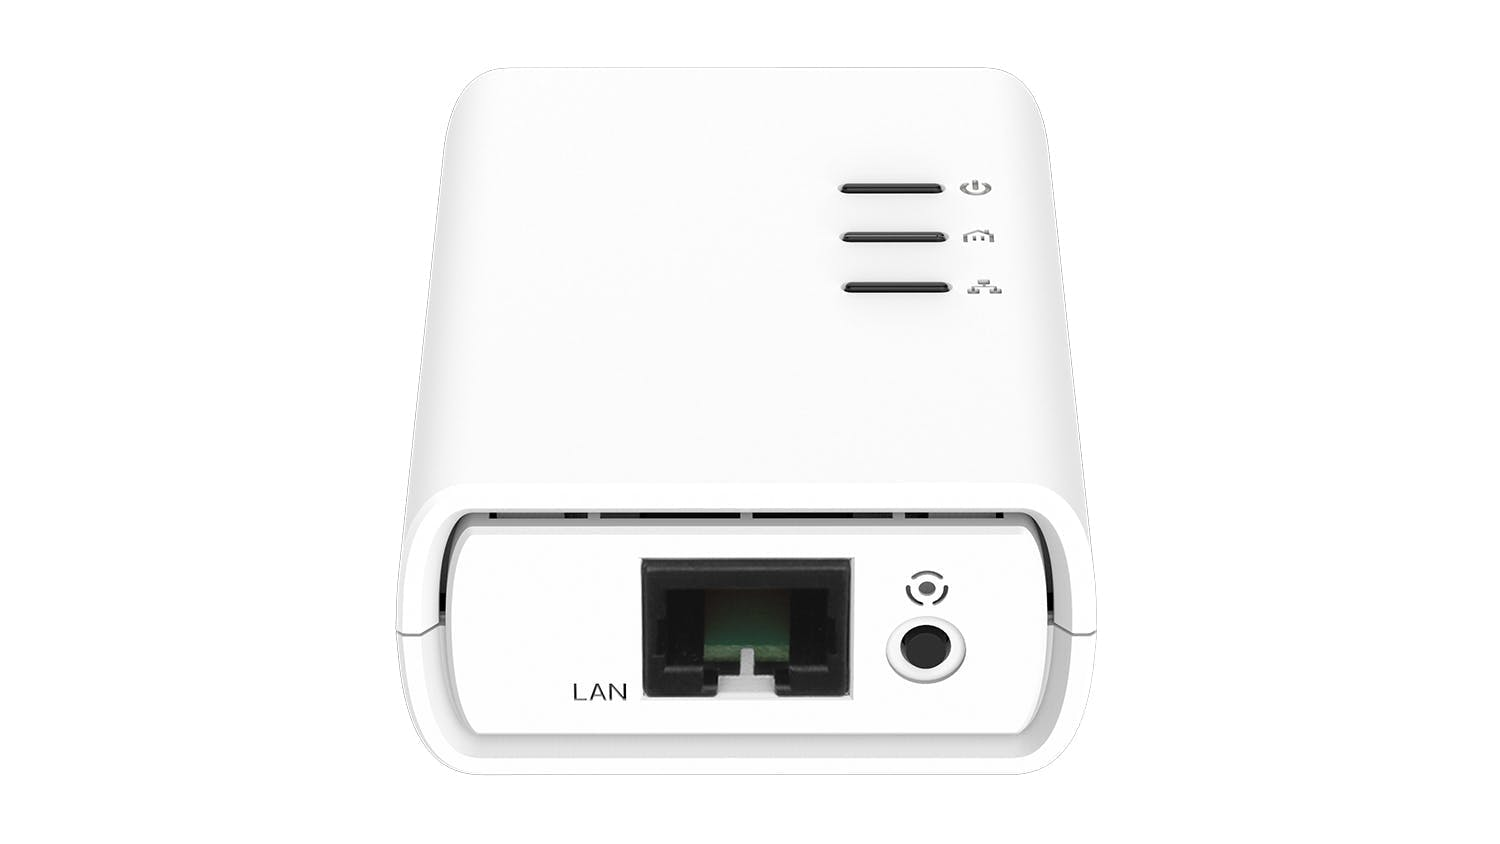 D-Link DHP-309AV Powerline AV+ Mini Starter Kit